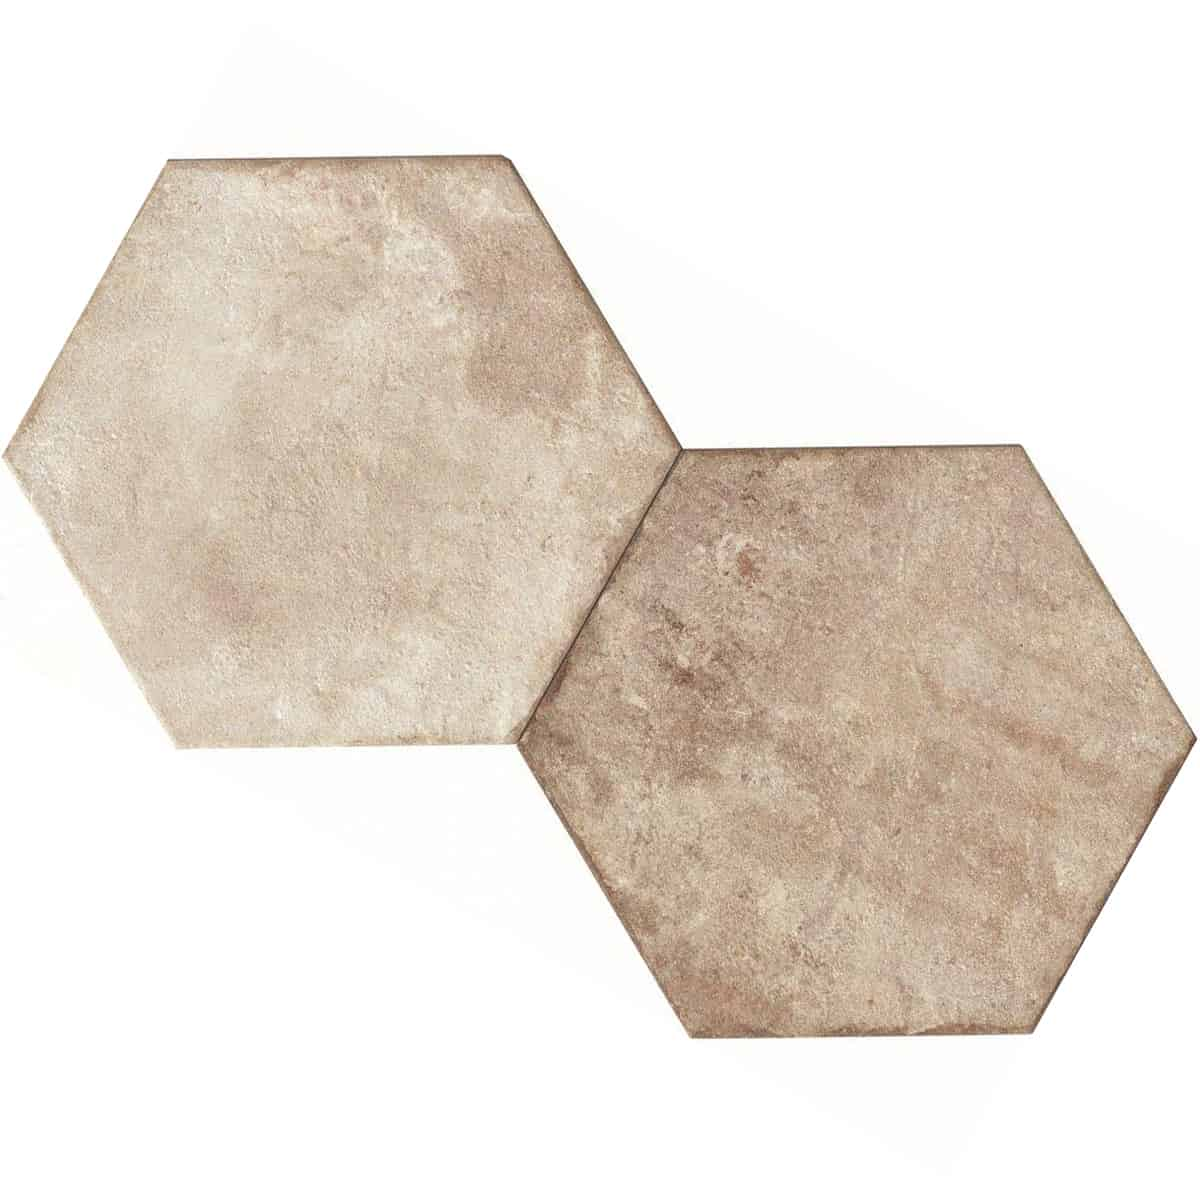 large format pattern hexagon tile 345x400mm Deco Heritage ivory by Decobella tiles - South Africa Big format porcelain tiles from Italy and with up to 100 shades, this tile is ideal when considering a pattern hex tile with an authentic feel.Enjoy the quility of porcelain with great anti-slip properties but the look of clay or cement.